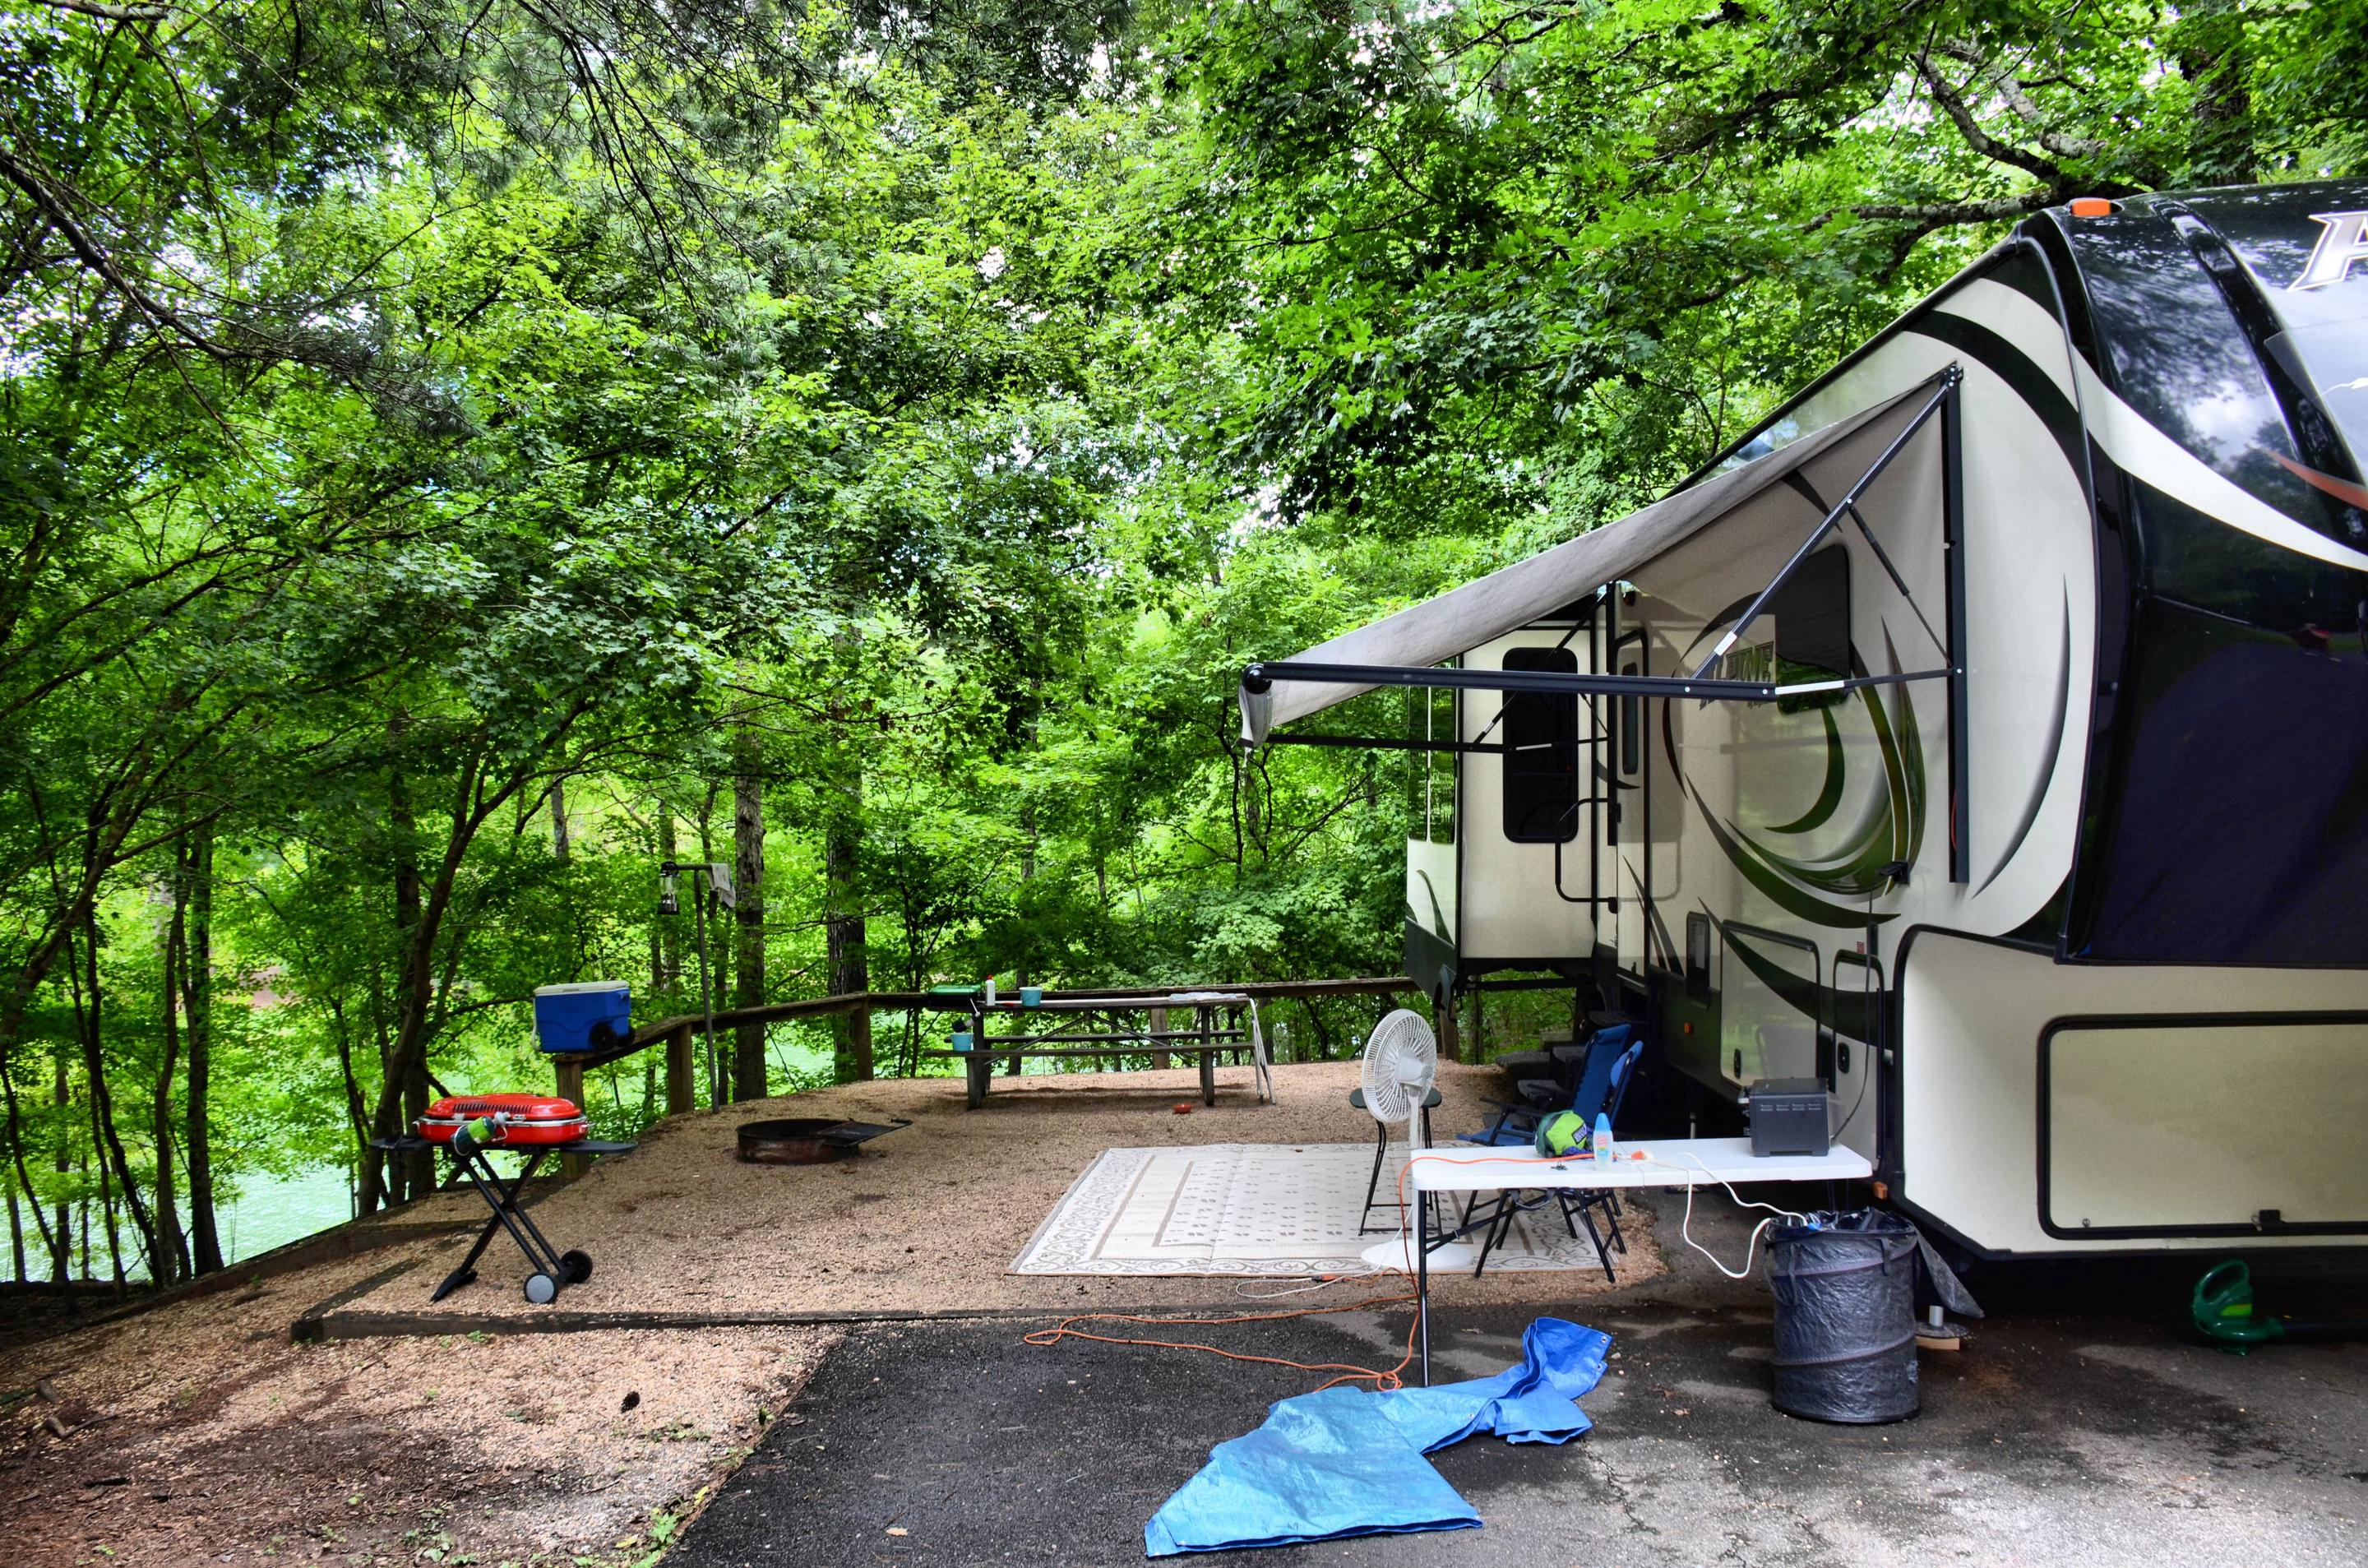 Awning-side clearance, campsite view.McKinney Campground, campsite 81.